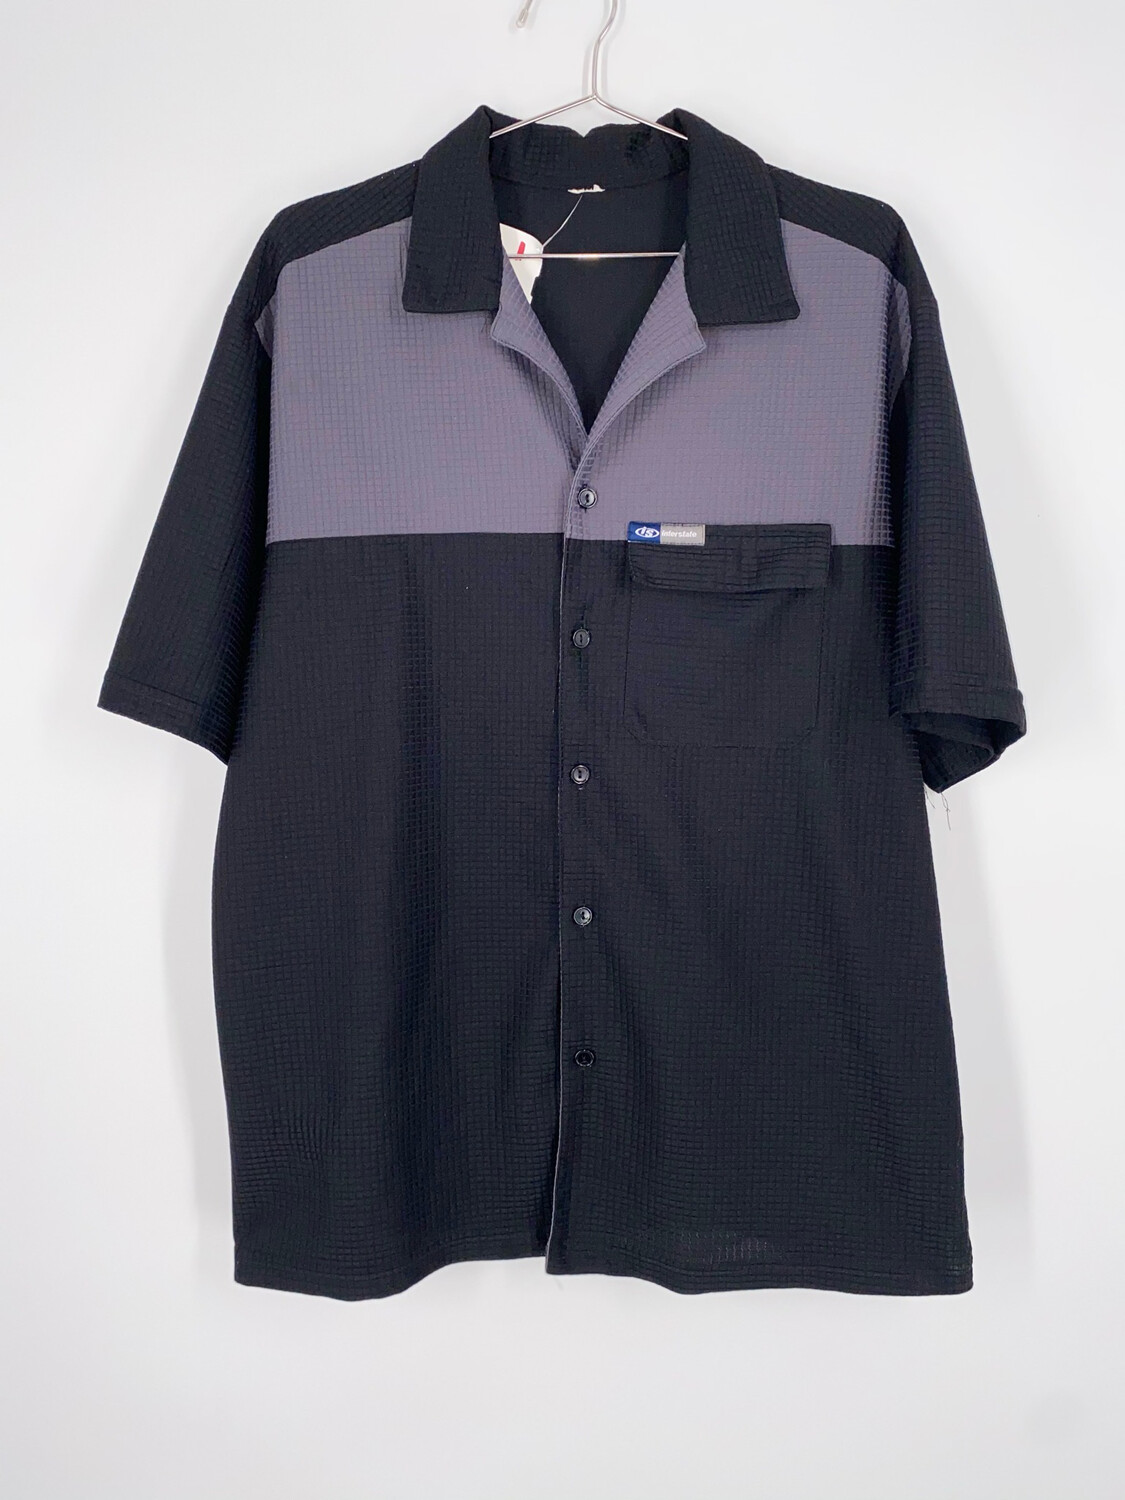 Interstate Black And Grey Color Block Shirt Sleeve Button Up Size L